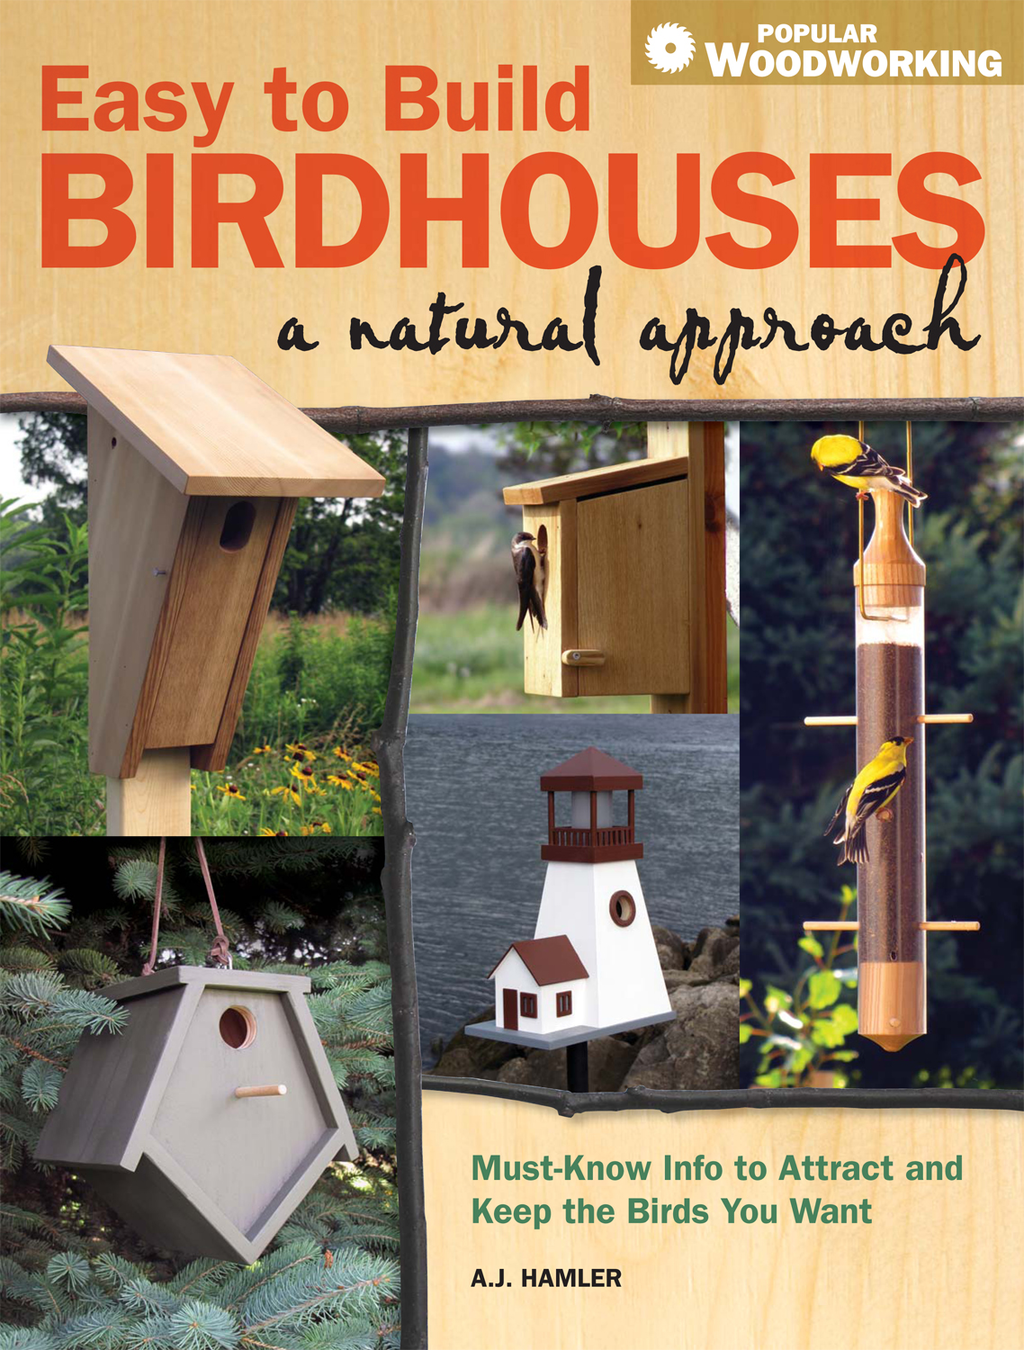 Easy to Build Birdhouses - A Natural Approach Must Know Info to Attract and Keep the Birds You Want